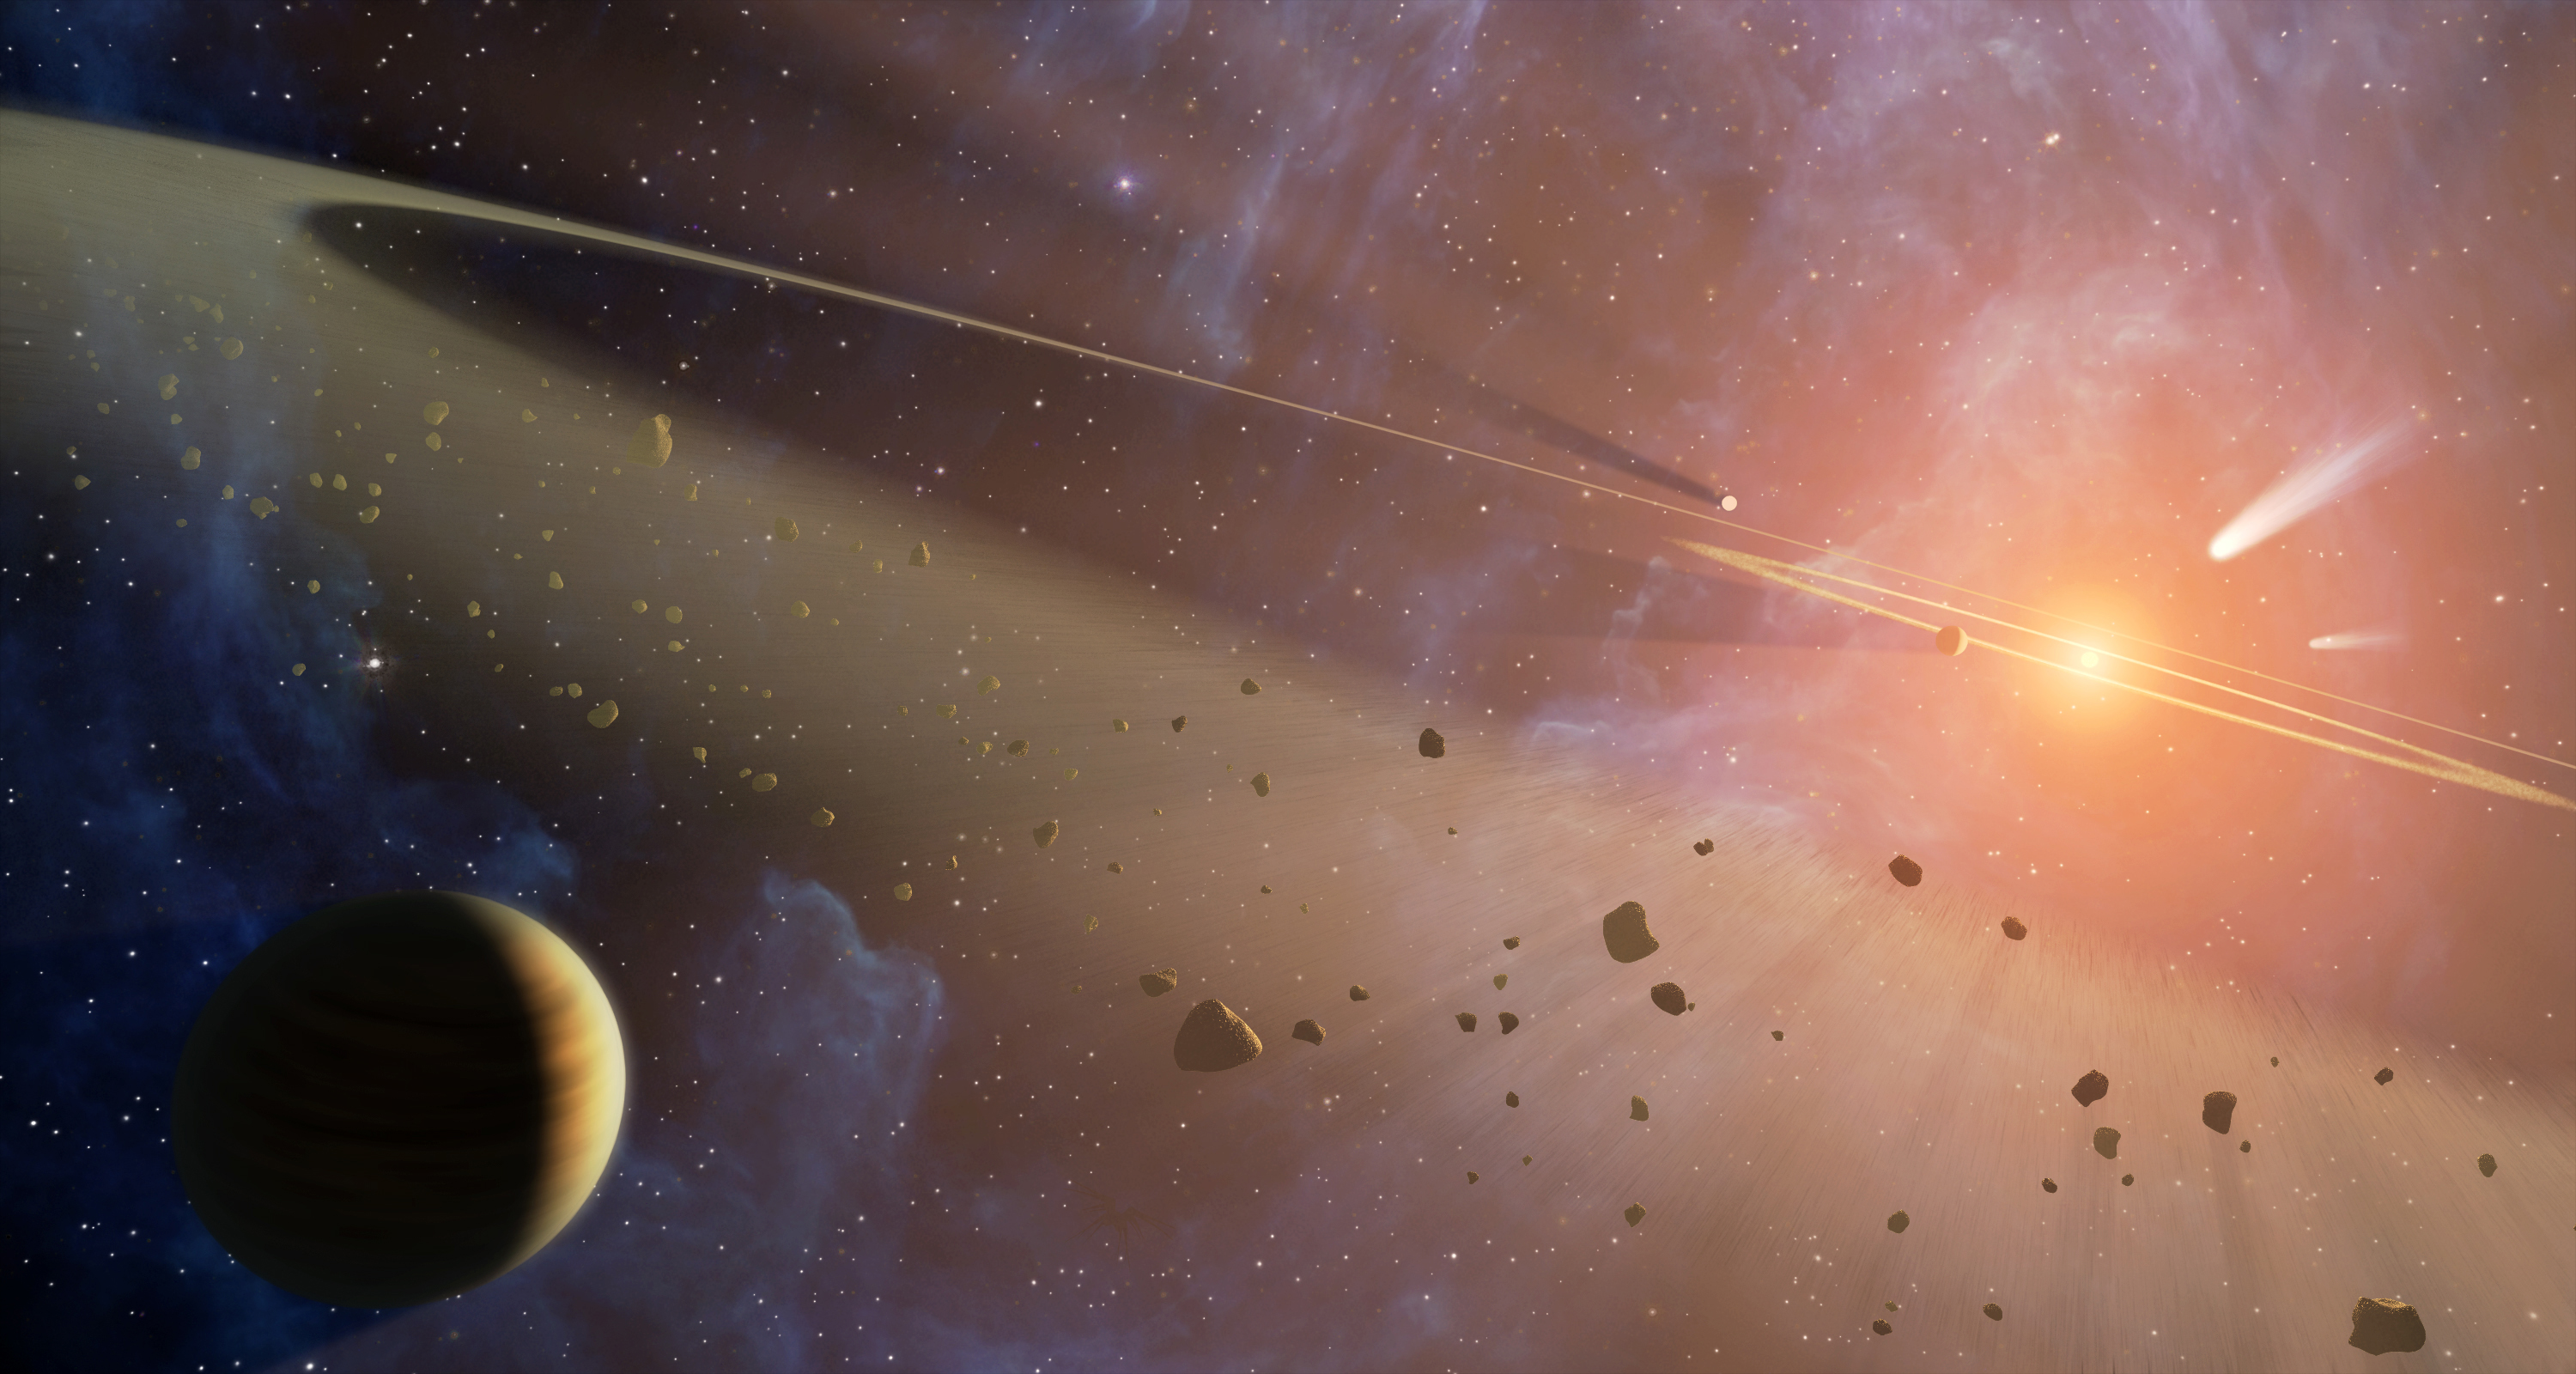 This artist's conception shows the closest known planetary system to our own, called Epsilon... [+] Eridani. Observations from NASA's Spitzer Space Telescope show that the system hosts two asteroid belts, in addition to previously identified candidate planets and an outer comet ring. Image credit: NASA/JPL-Caltech